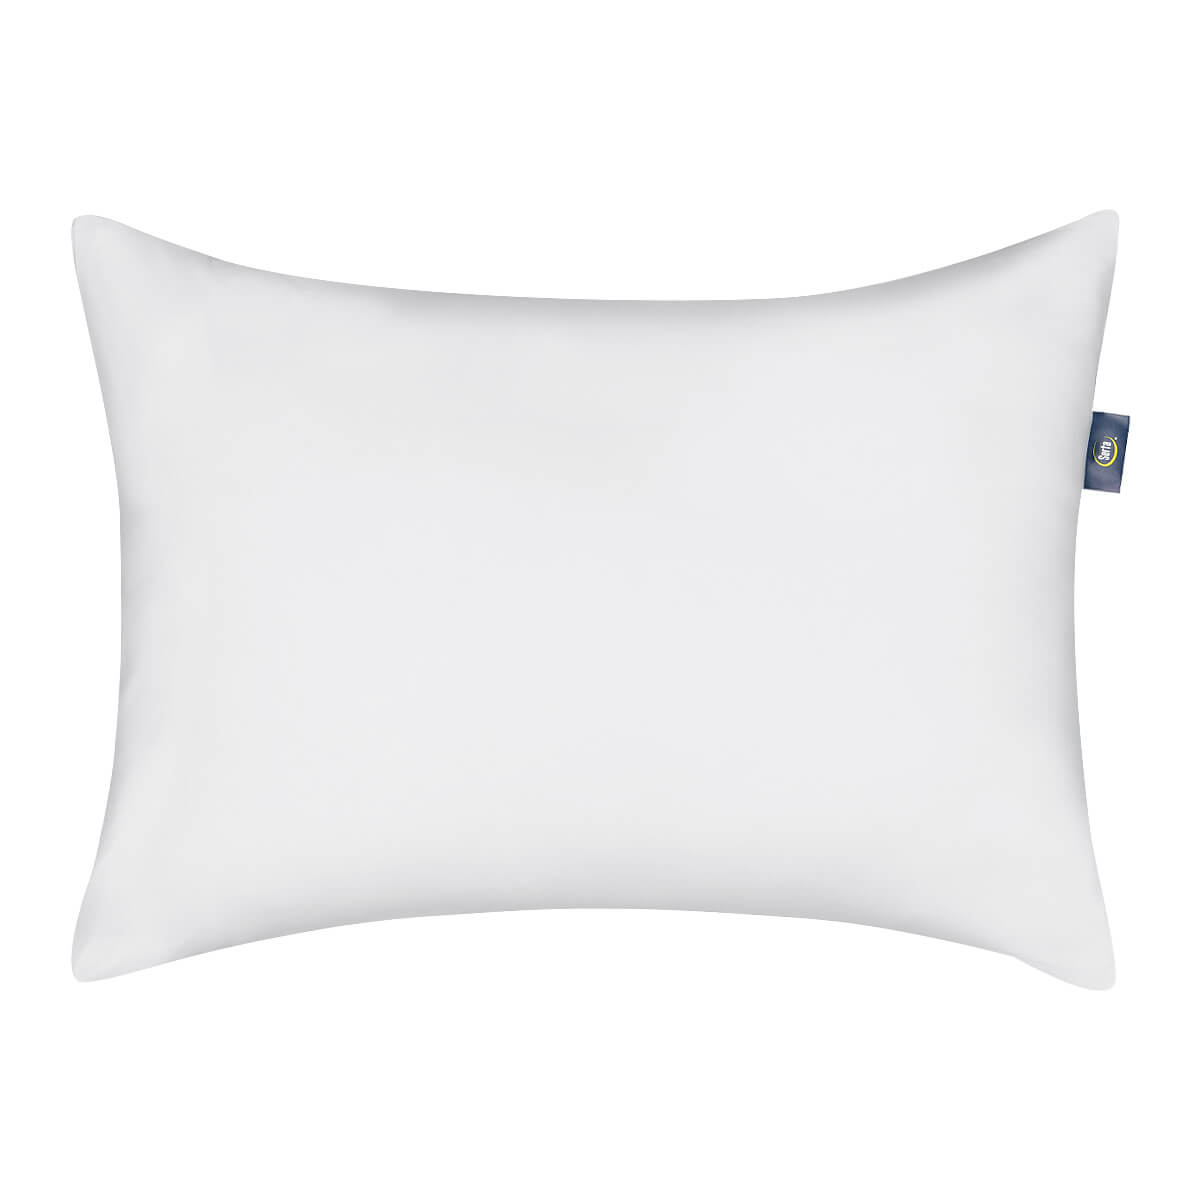 Serta Chill Luxe Pillow Protector - front view of pillow